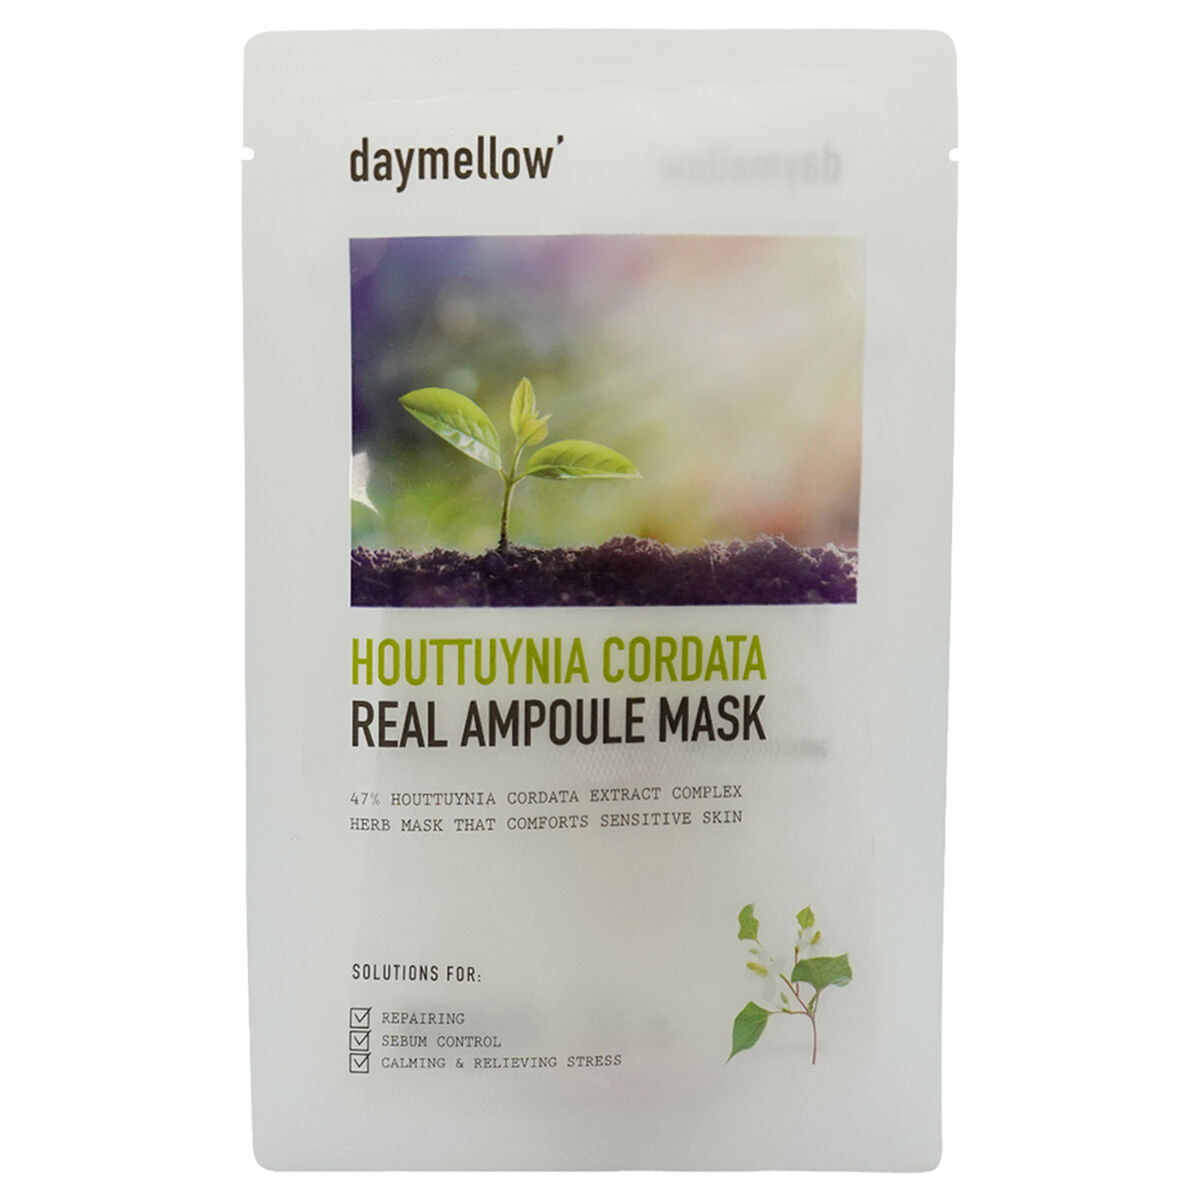 Houttuynia Cordata Real Ampoule Mask